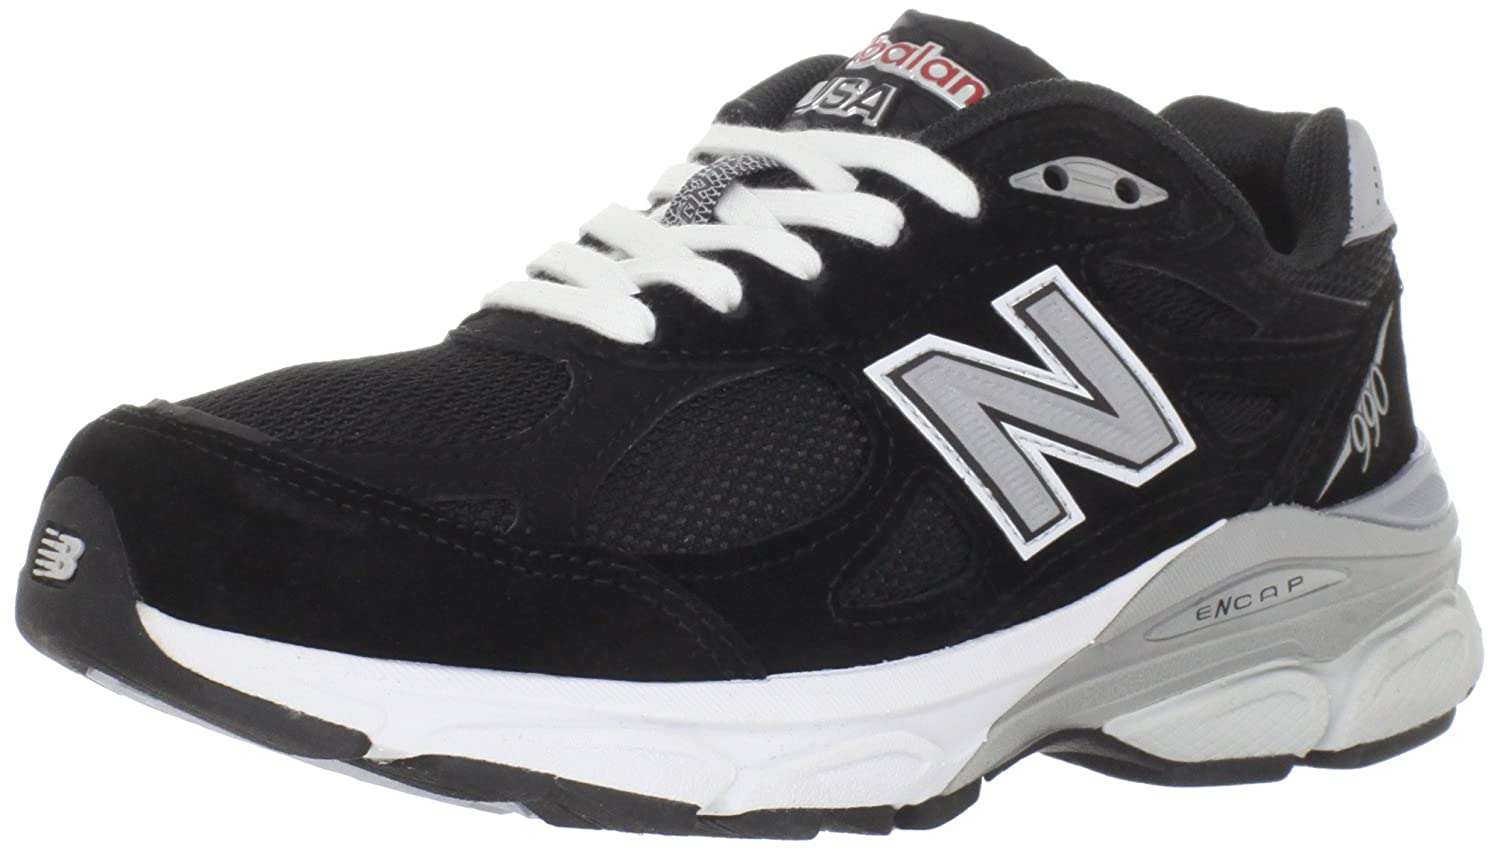 New Balance Women's 990V3 Running Shoe B005P1ZKLI 9.5 D US|Black